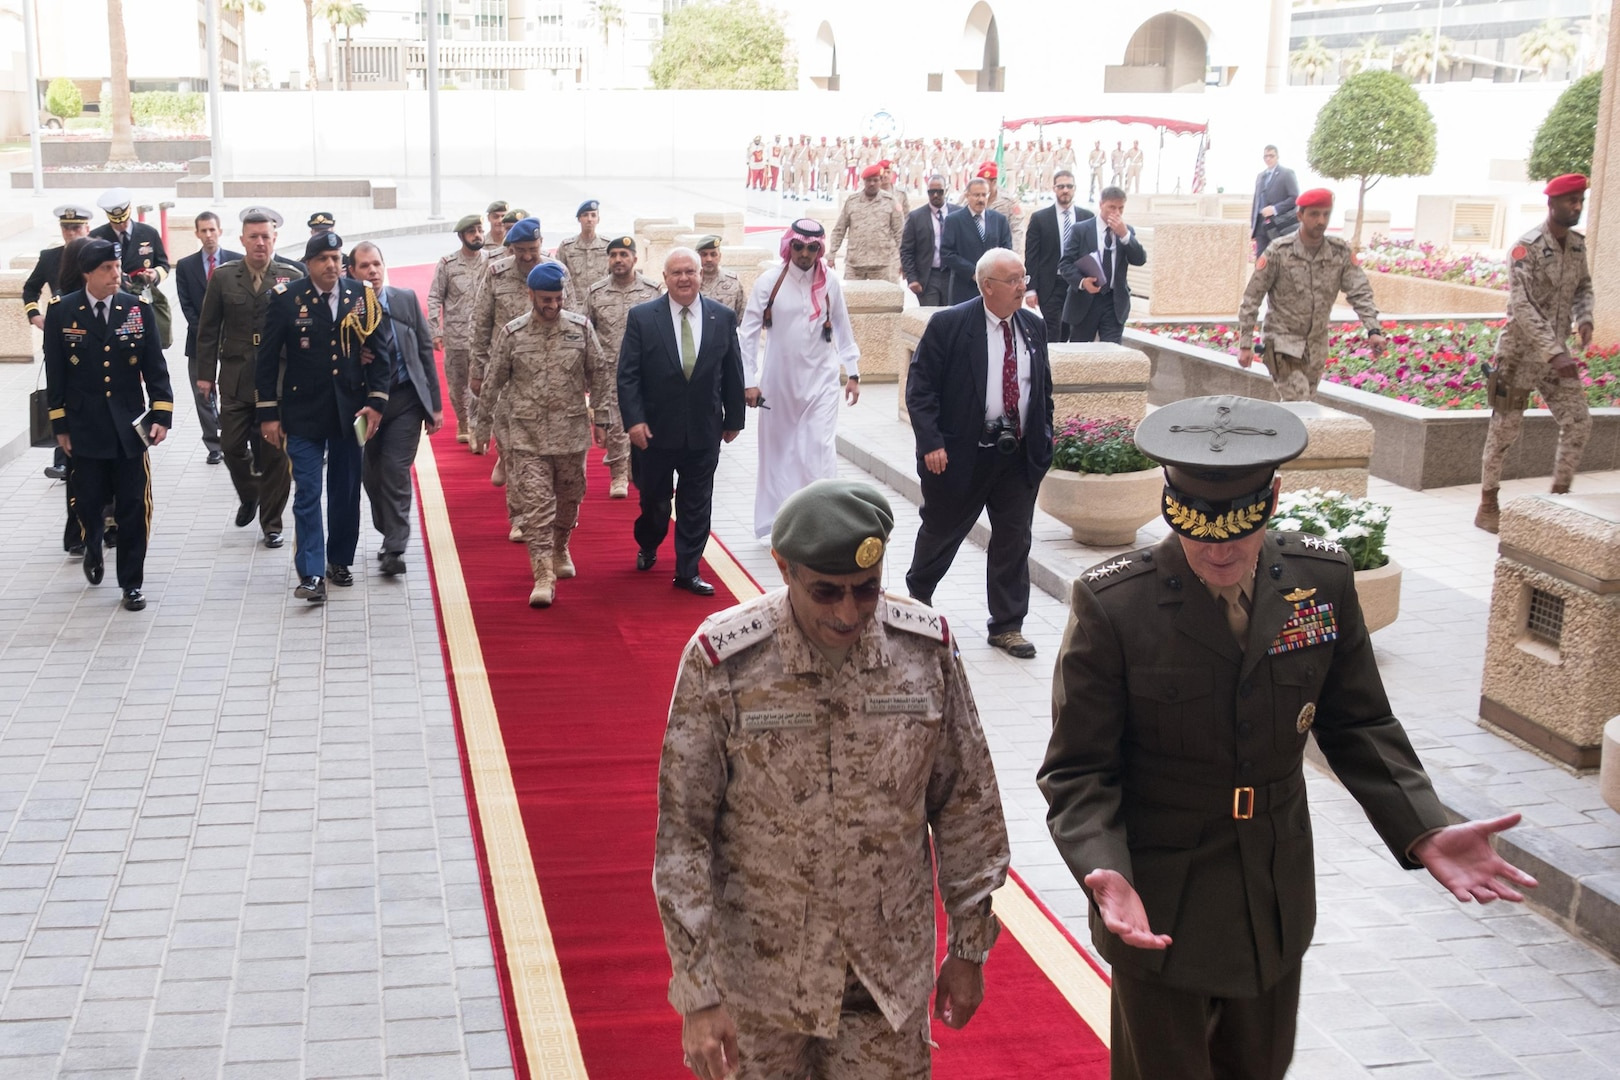 Saudi Chief of Defense Gen. Abdulrahman bin Saleh al-Banyan and Marine Corps Gen. Joe Dunford, chairman of the Joint Chiefs of Staff, walk to a meeting in Riyadh, Saudi Arabia, Nov. 8, 2016. Dunford was in Saudi Arabia to further military relations between the two nations. DoD photo by D. Myles Cullen